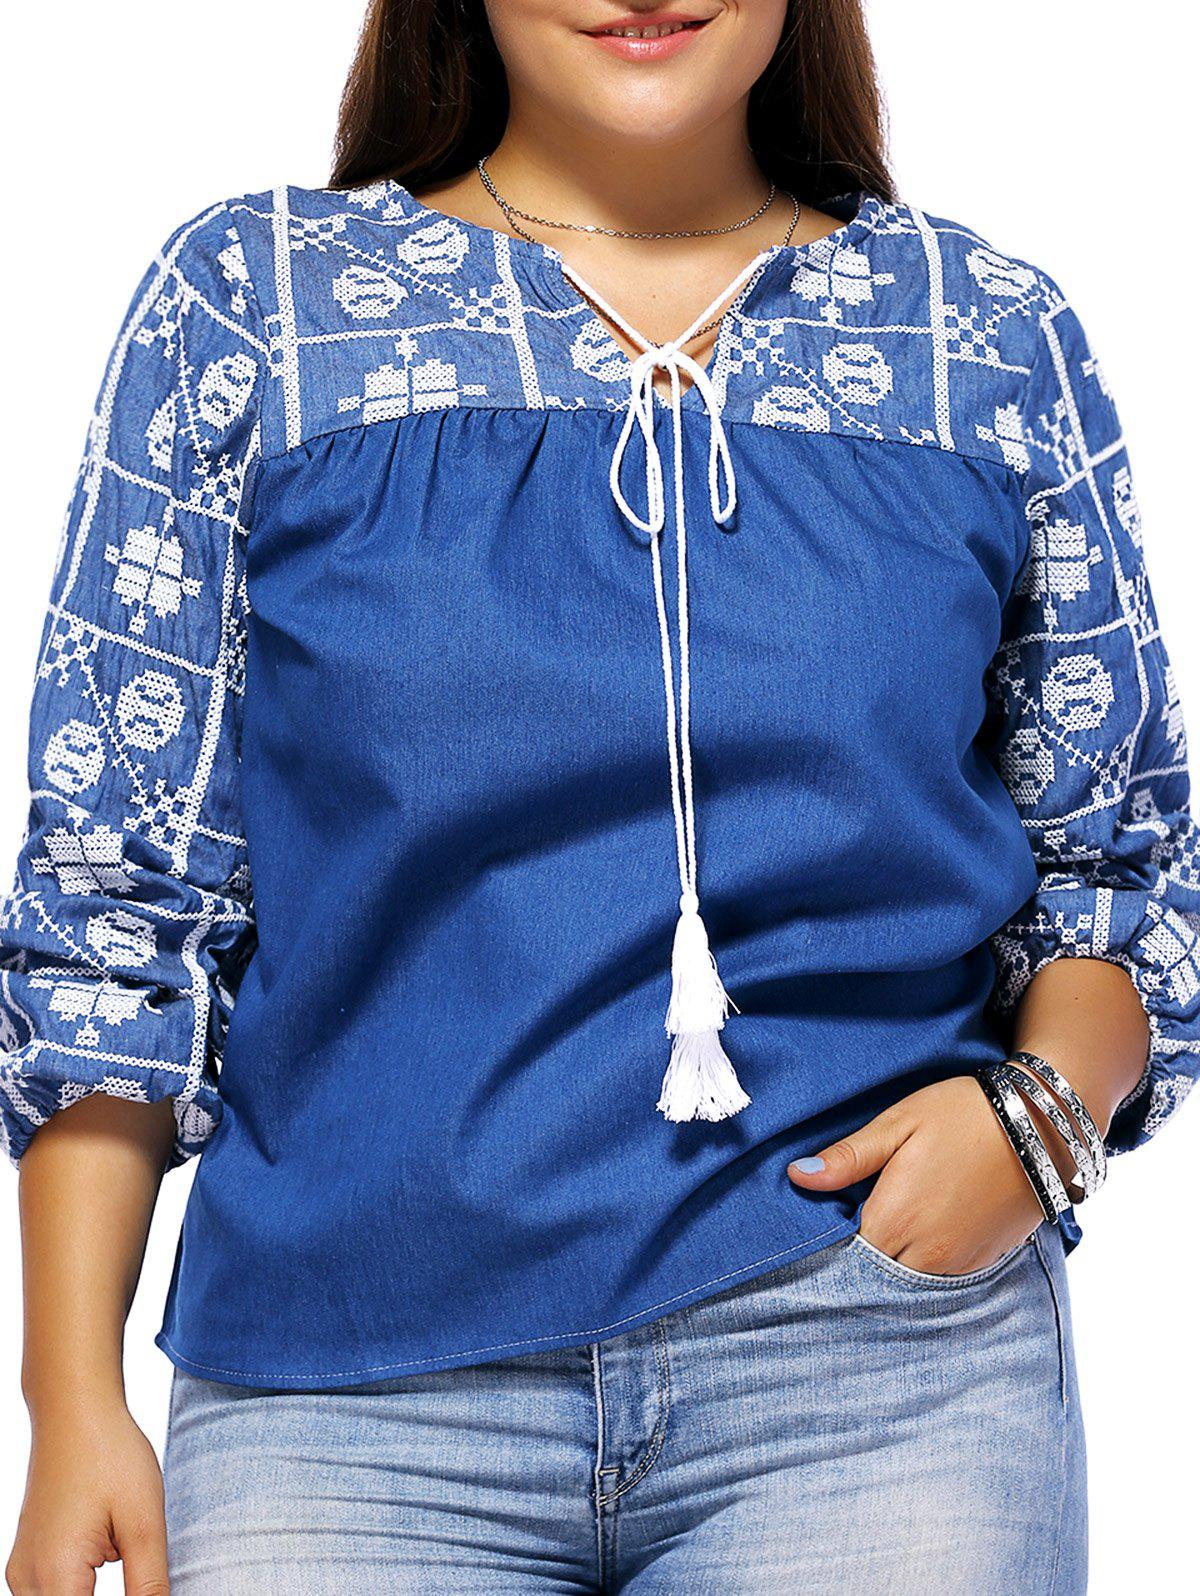 Chic Bohemian Style Plus Size Tie Front Tribal Pattern Women's Blouse